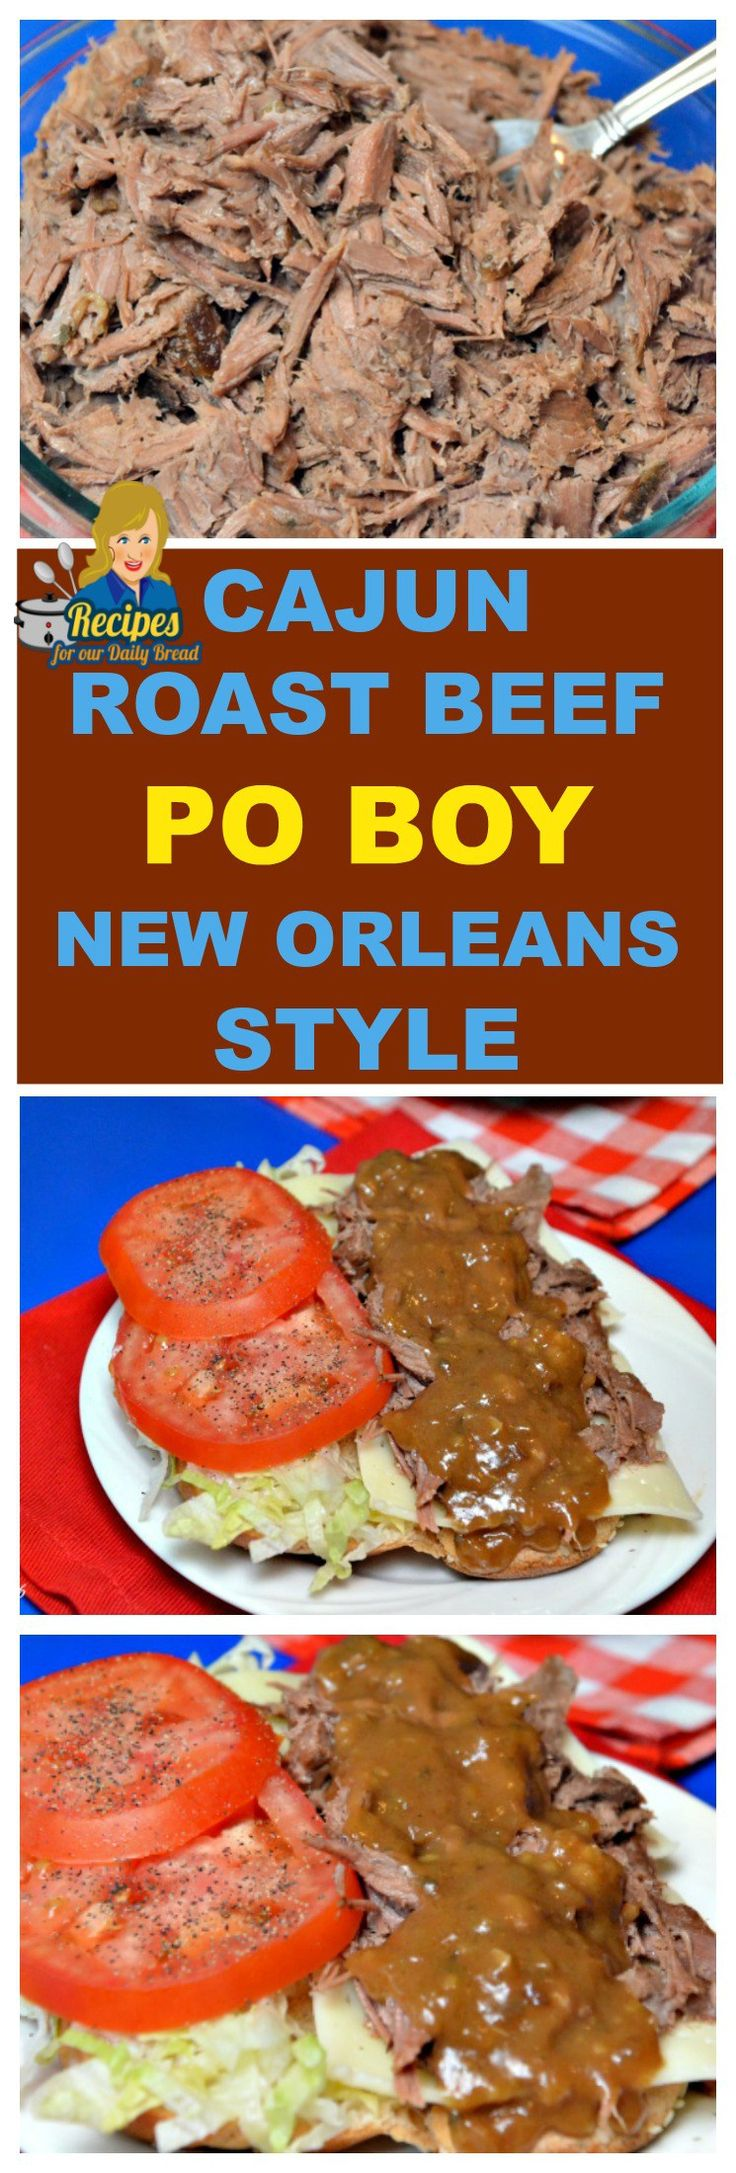 CAJUN ROAST BEEF PO-BOY NEW ORLEANS STYLE  If you love New Orleans food, you have landed on the perfect post.  The first time I had a Roast Beef Po Boy was while living in New Orleans.  They made the Best Roast Beef sandwich ever.  I had to try to duplicate it.  SEE FULL RECIPE HERE: http://recipesforourdailybread.com/roast-beef-po-boy-new-orleans/